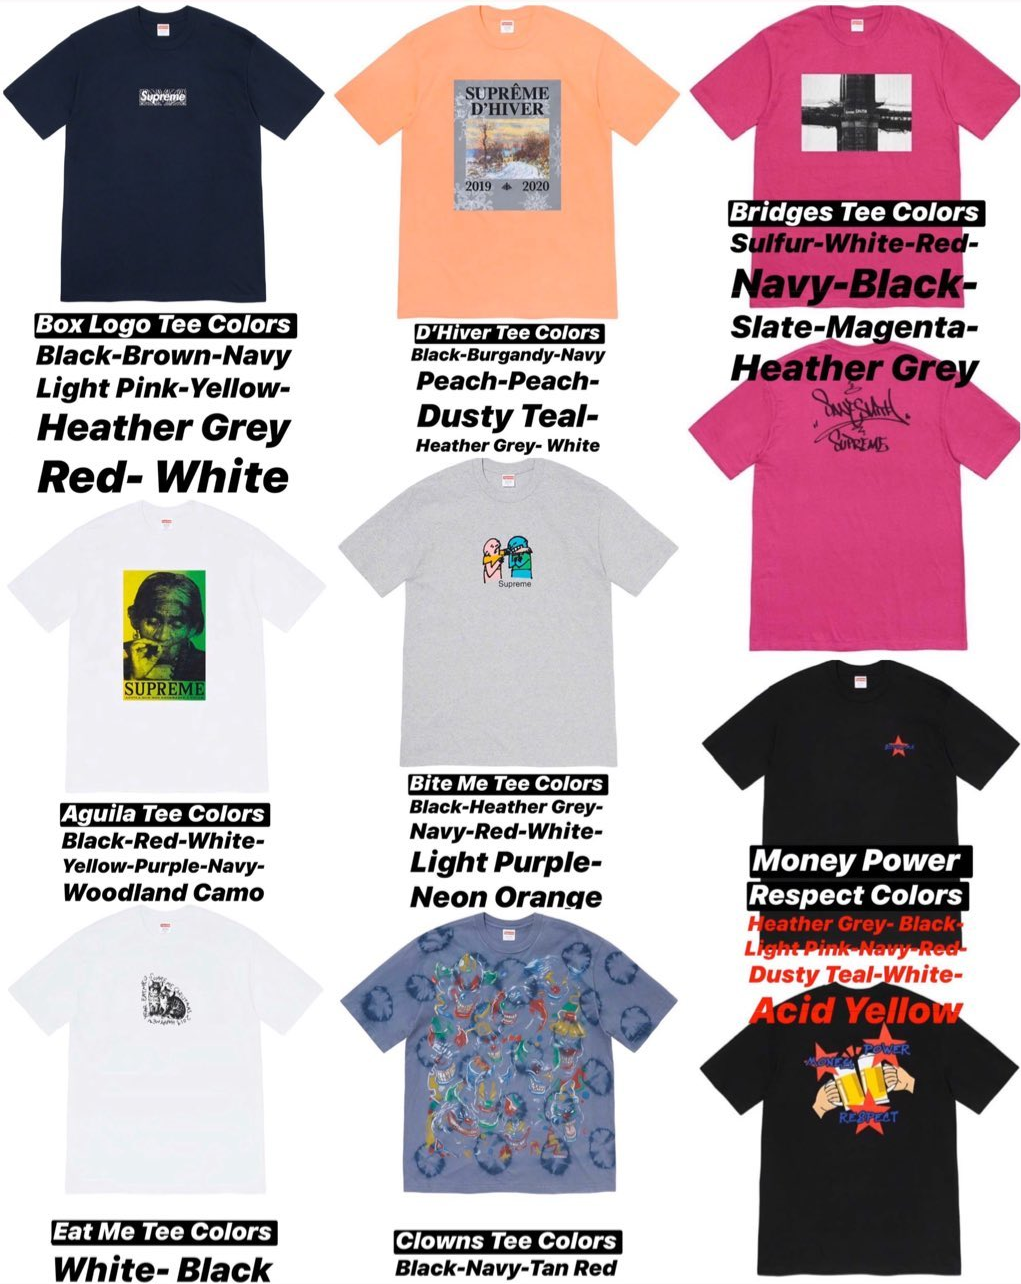 supreme-online-store-19aw-19fw-20191221-week17-release-items-winter-tee-colorway